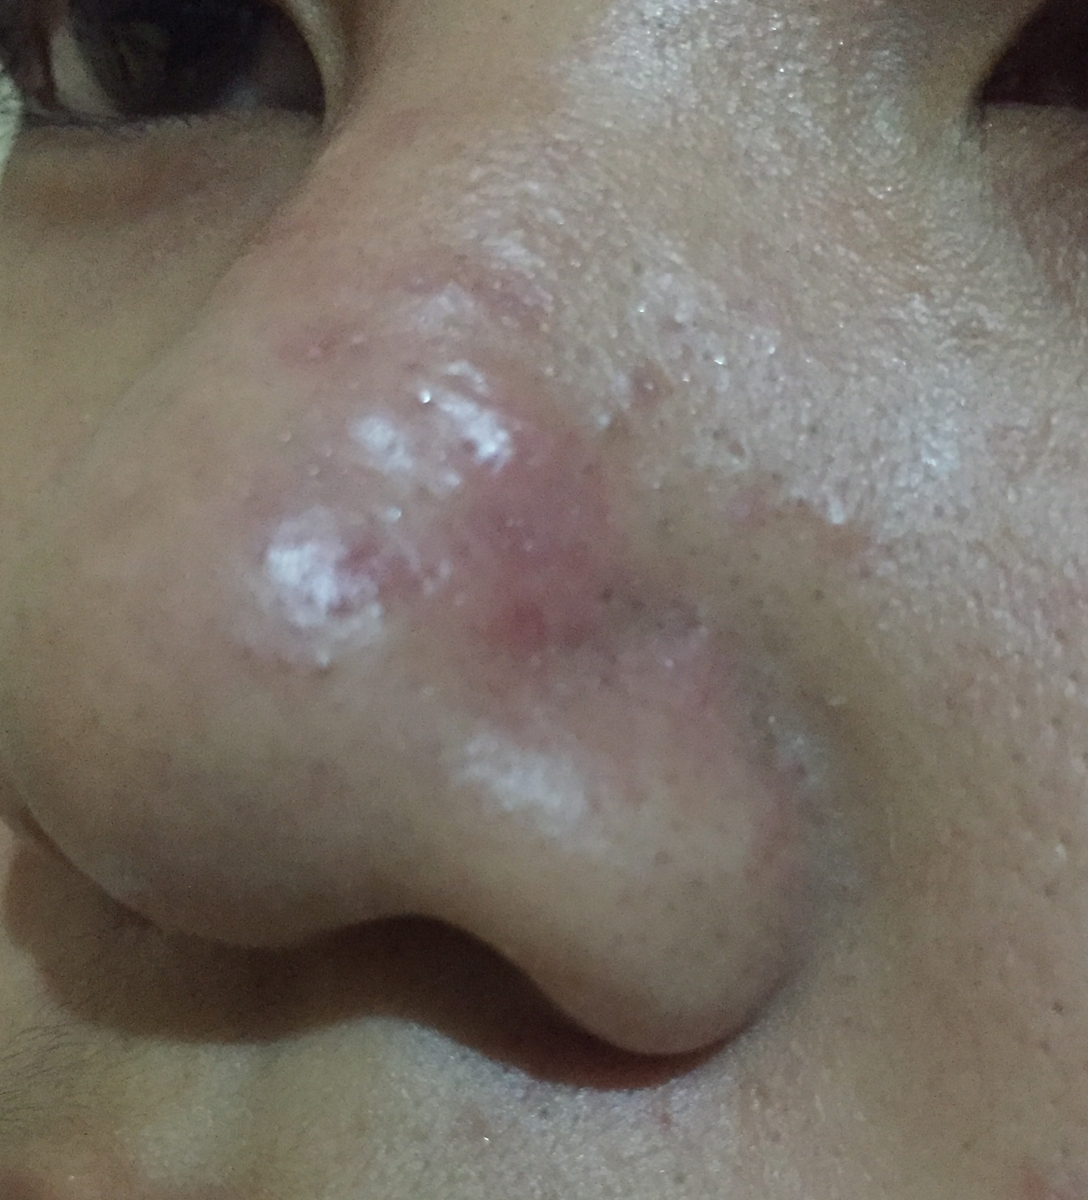 Acne scars and bumps on nose